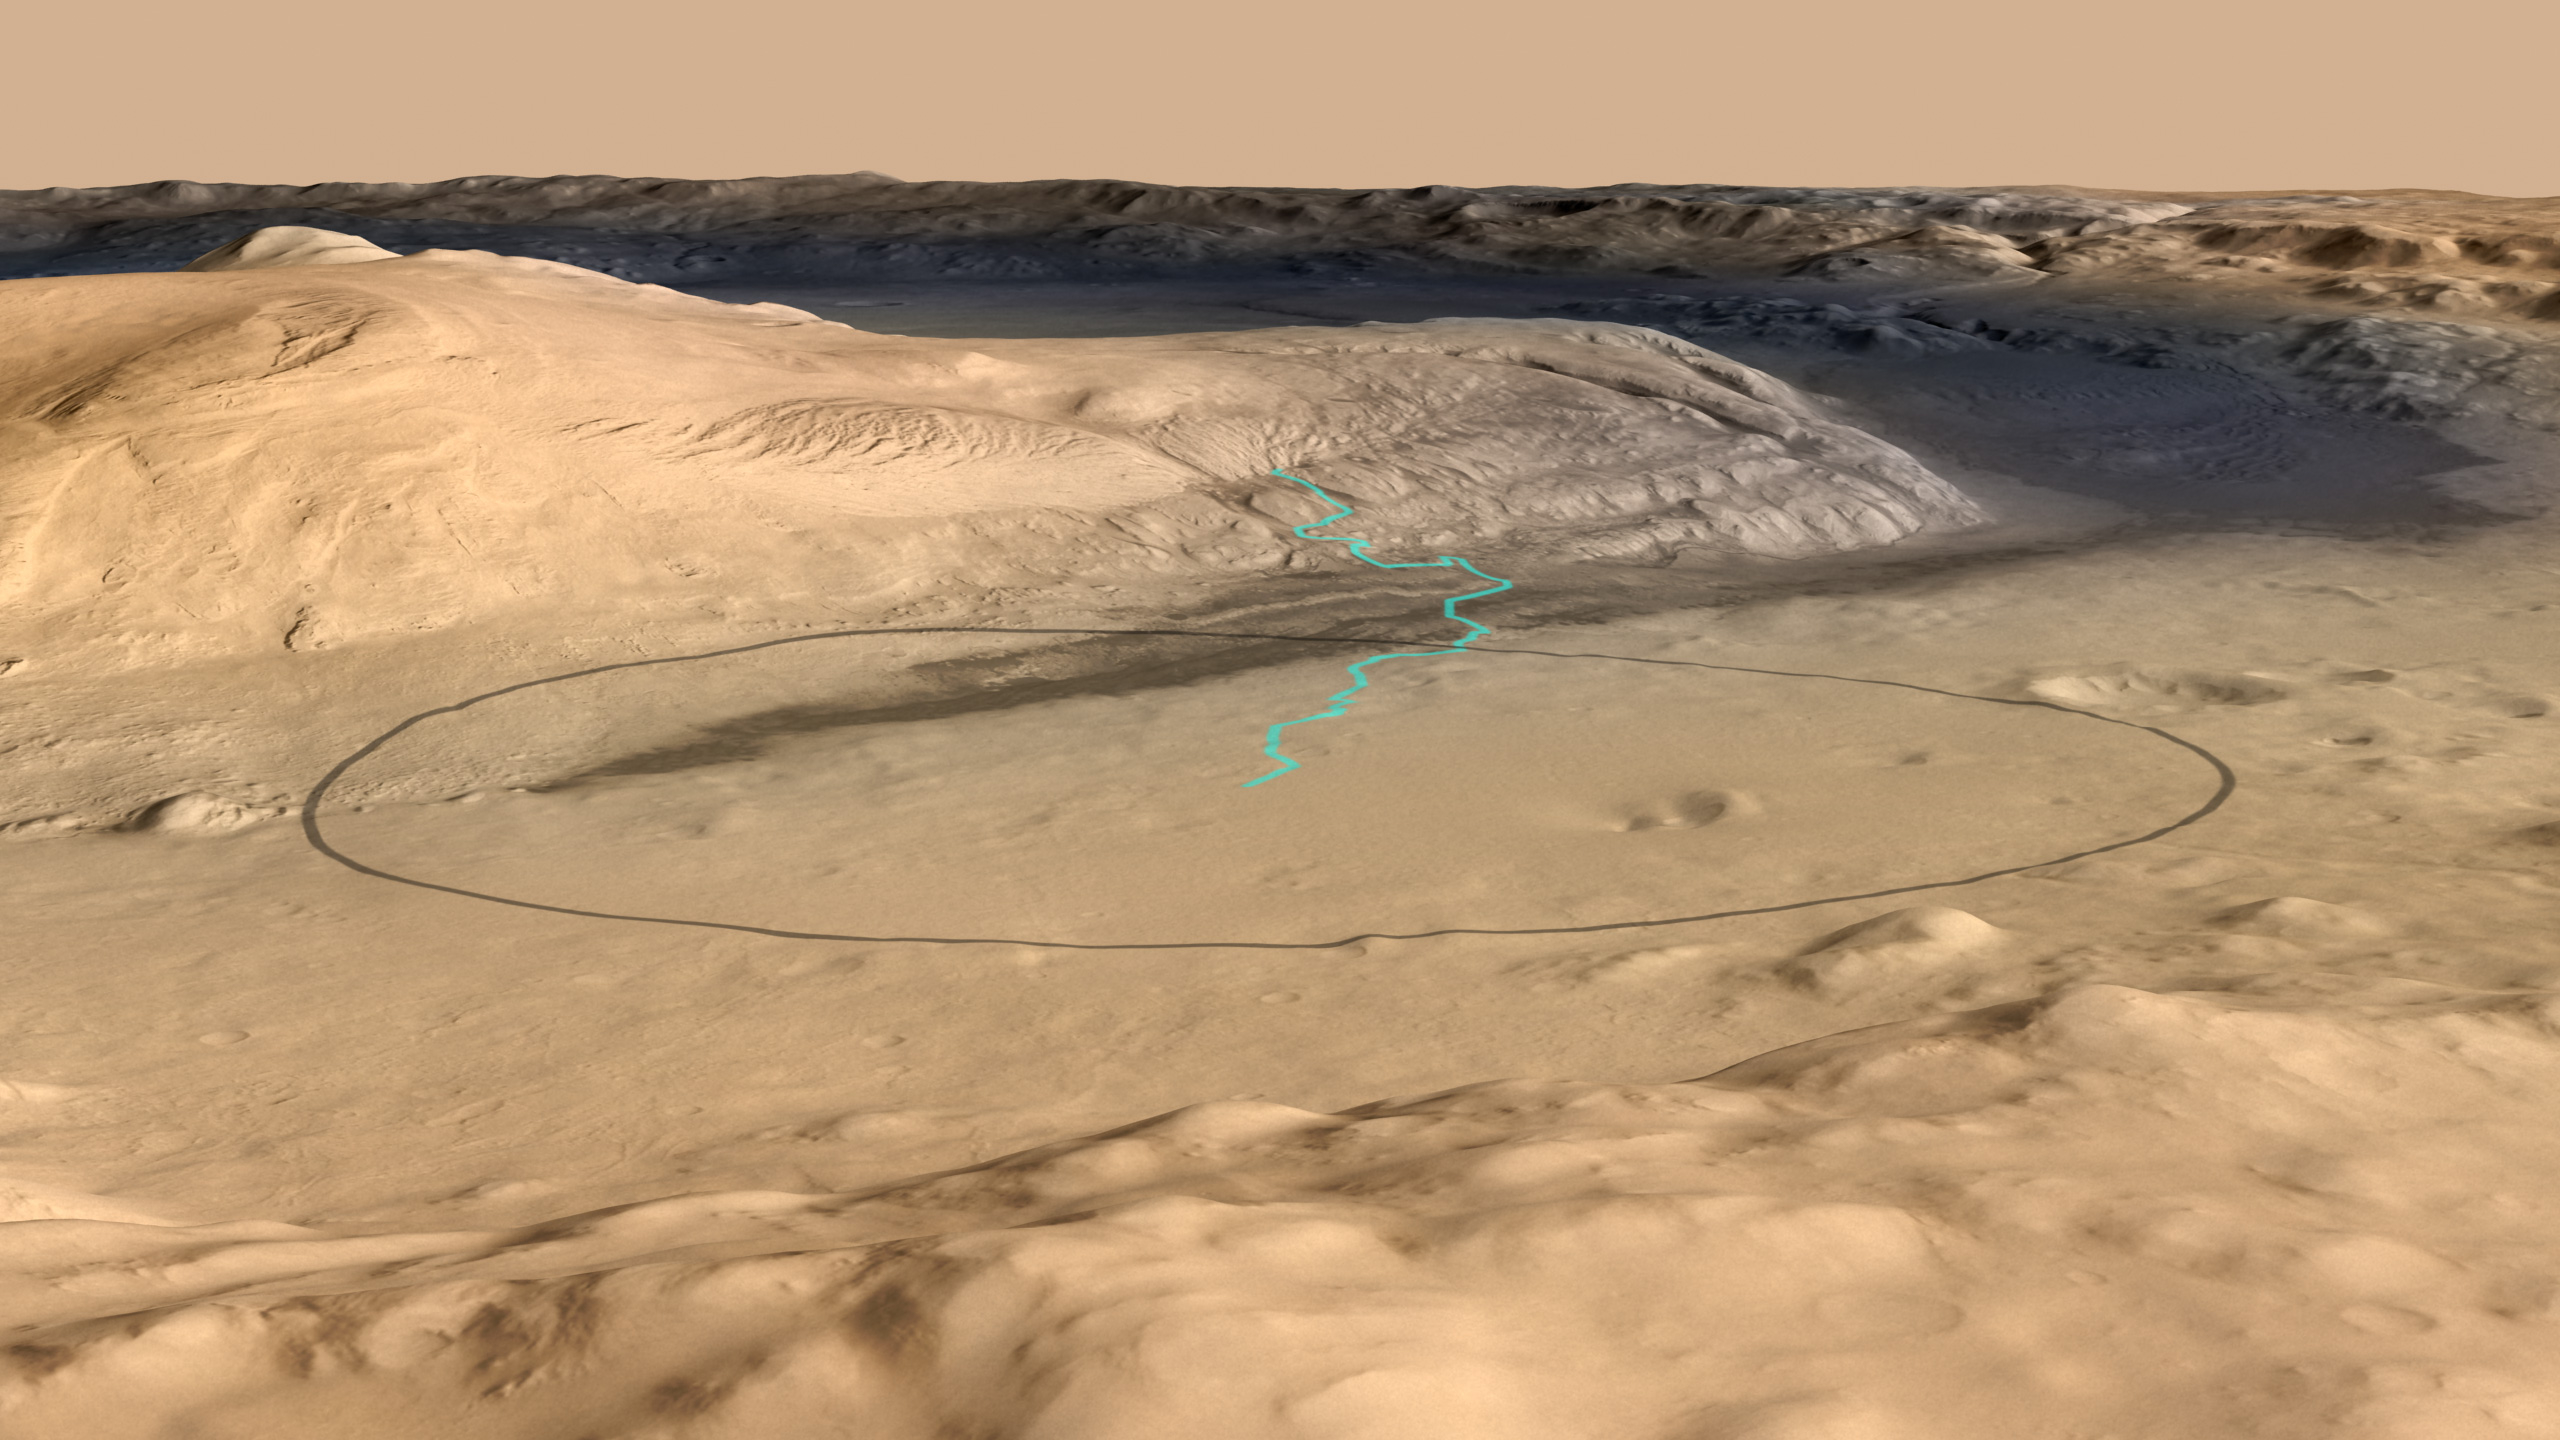 This image shows the target landing area for Curiosity, the rover of NASA's Mars Science Laboratory mission.